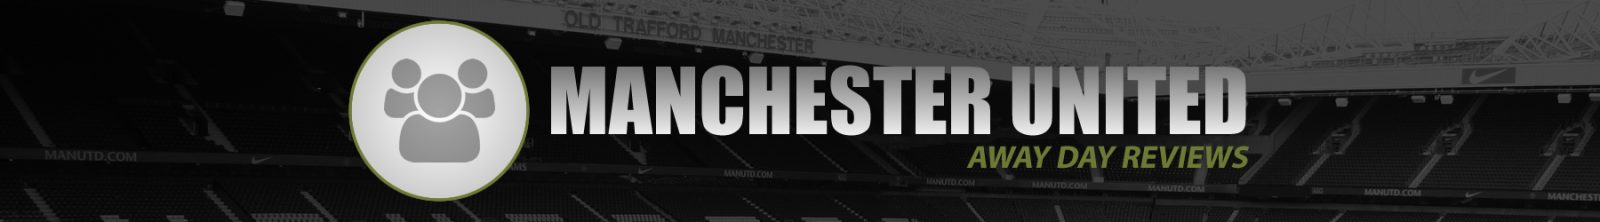 Review Manchester United